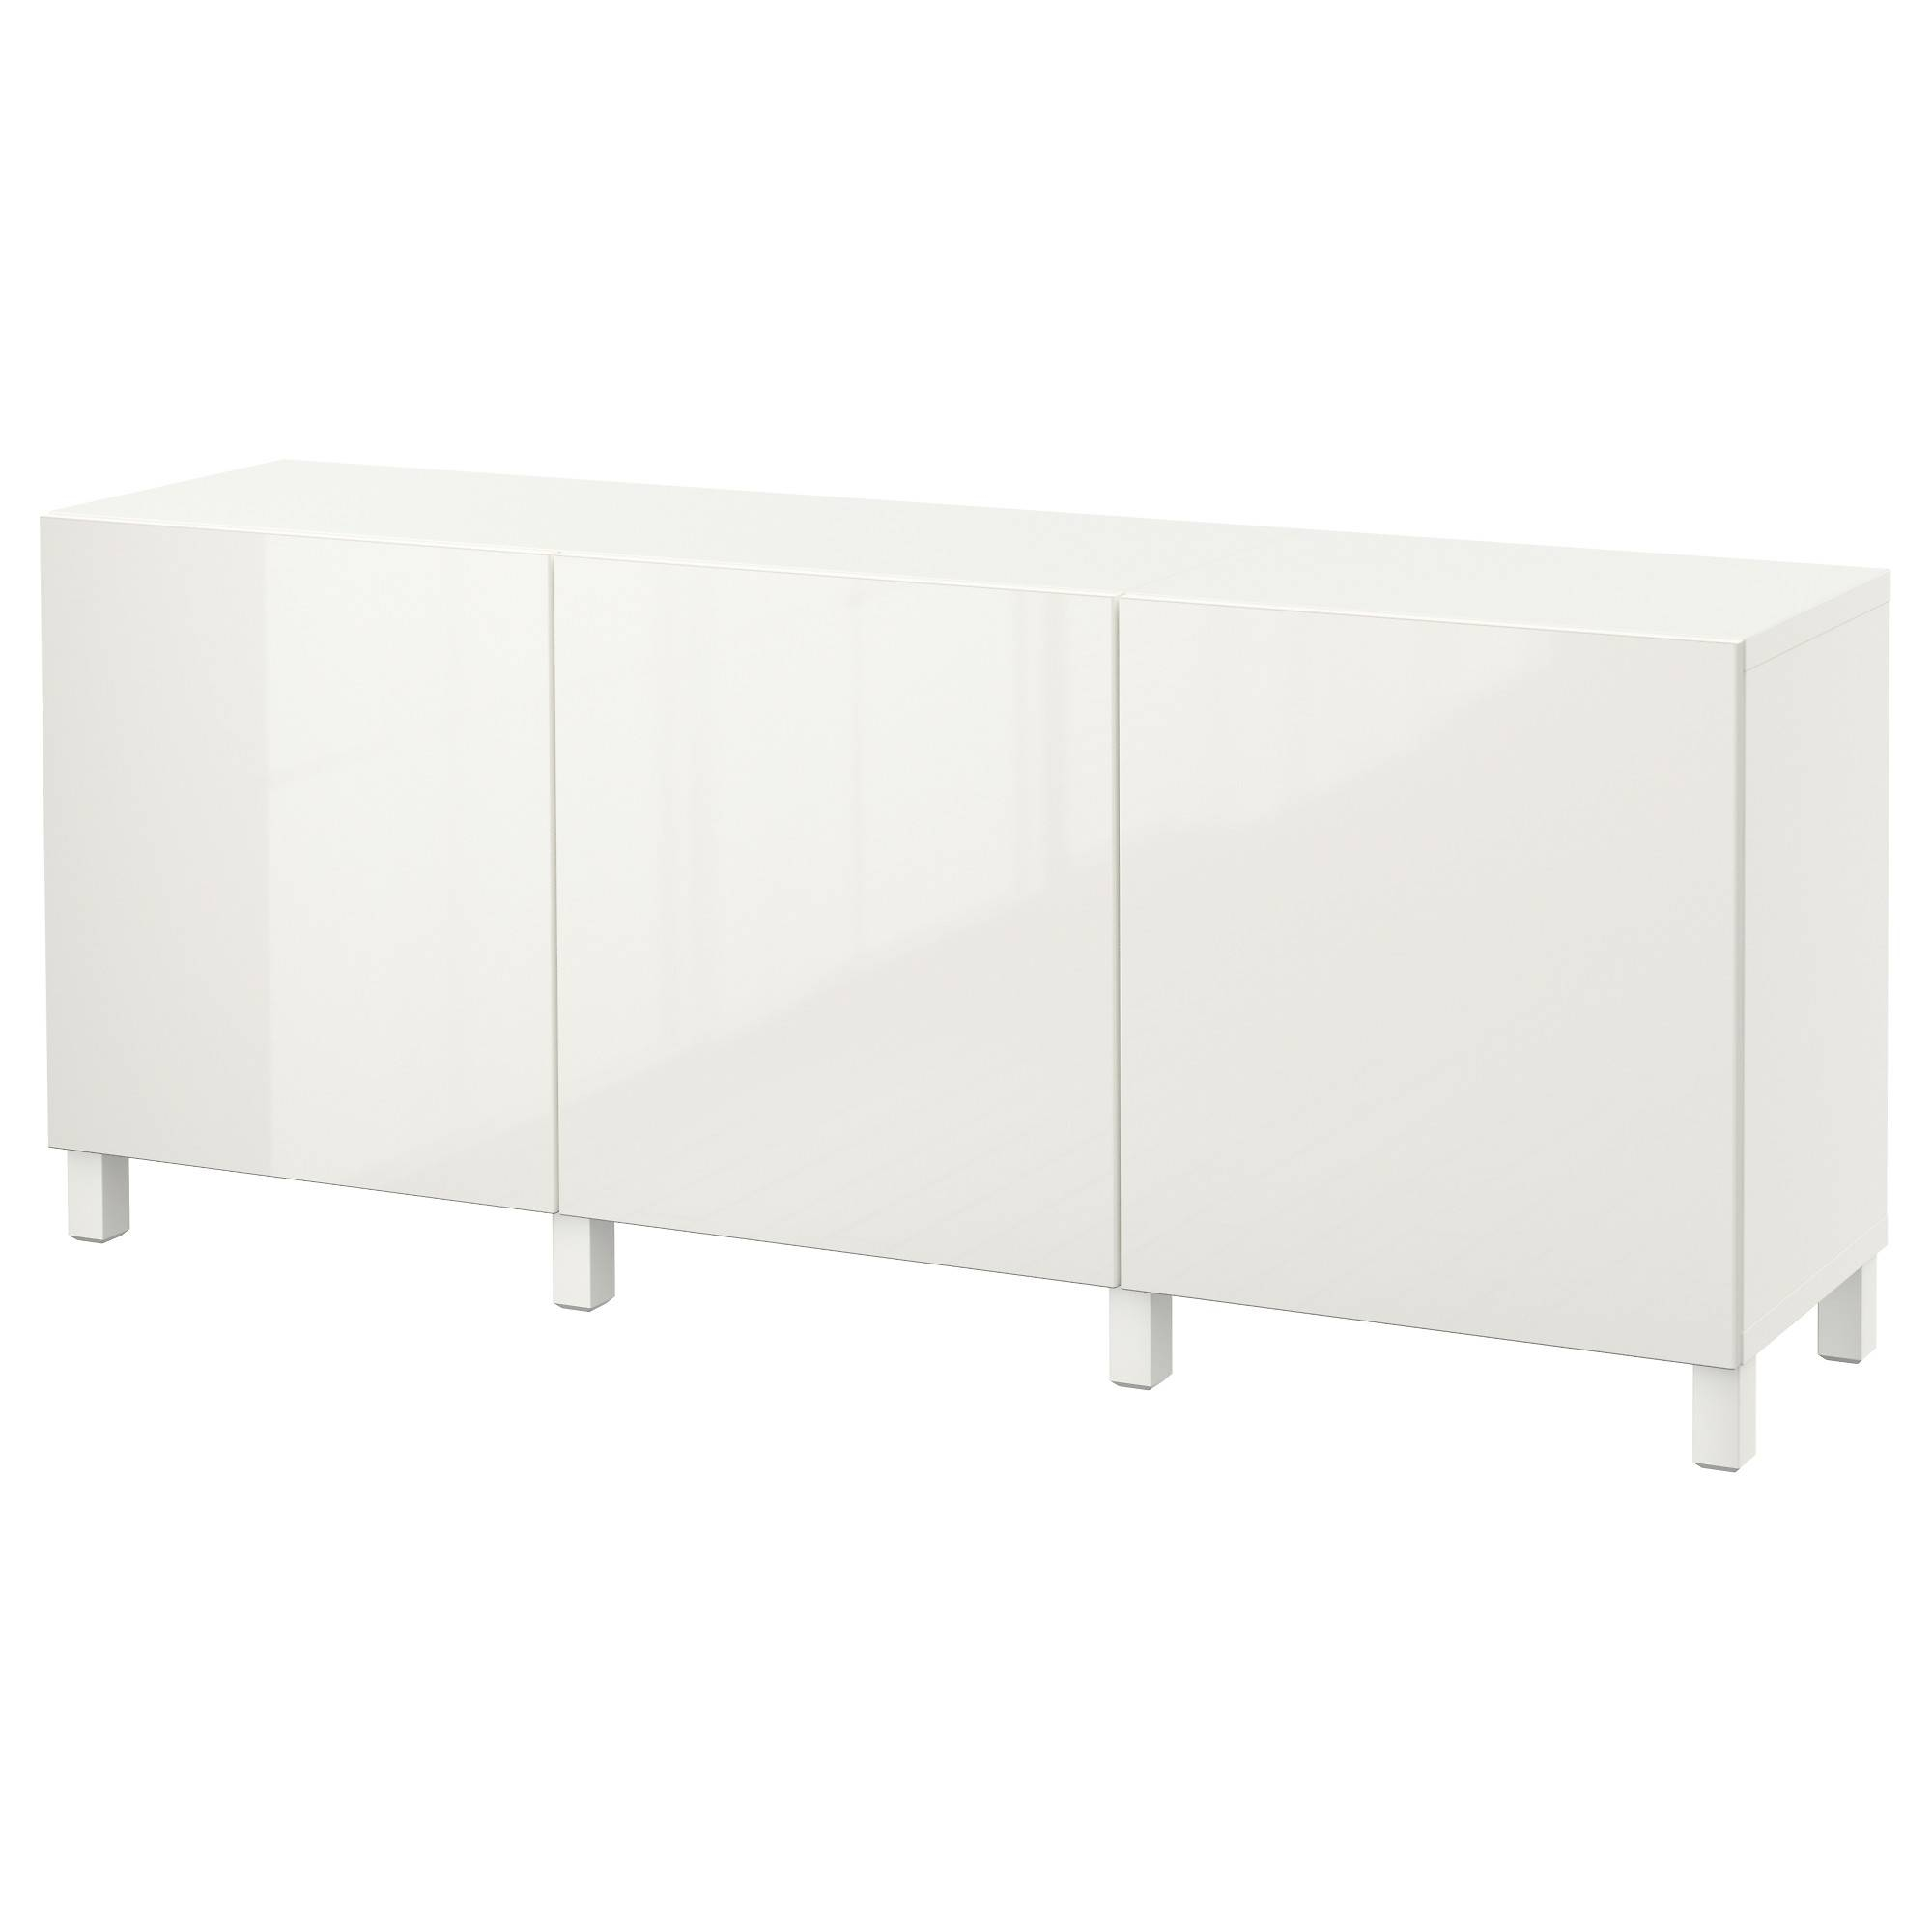 Popular Photo of Sideboard White